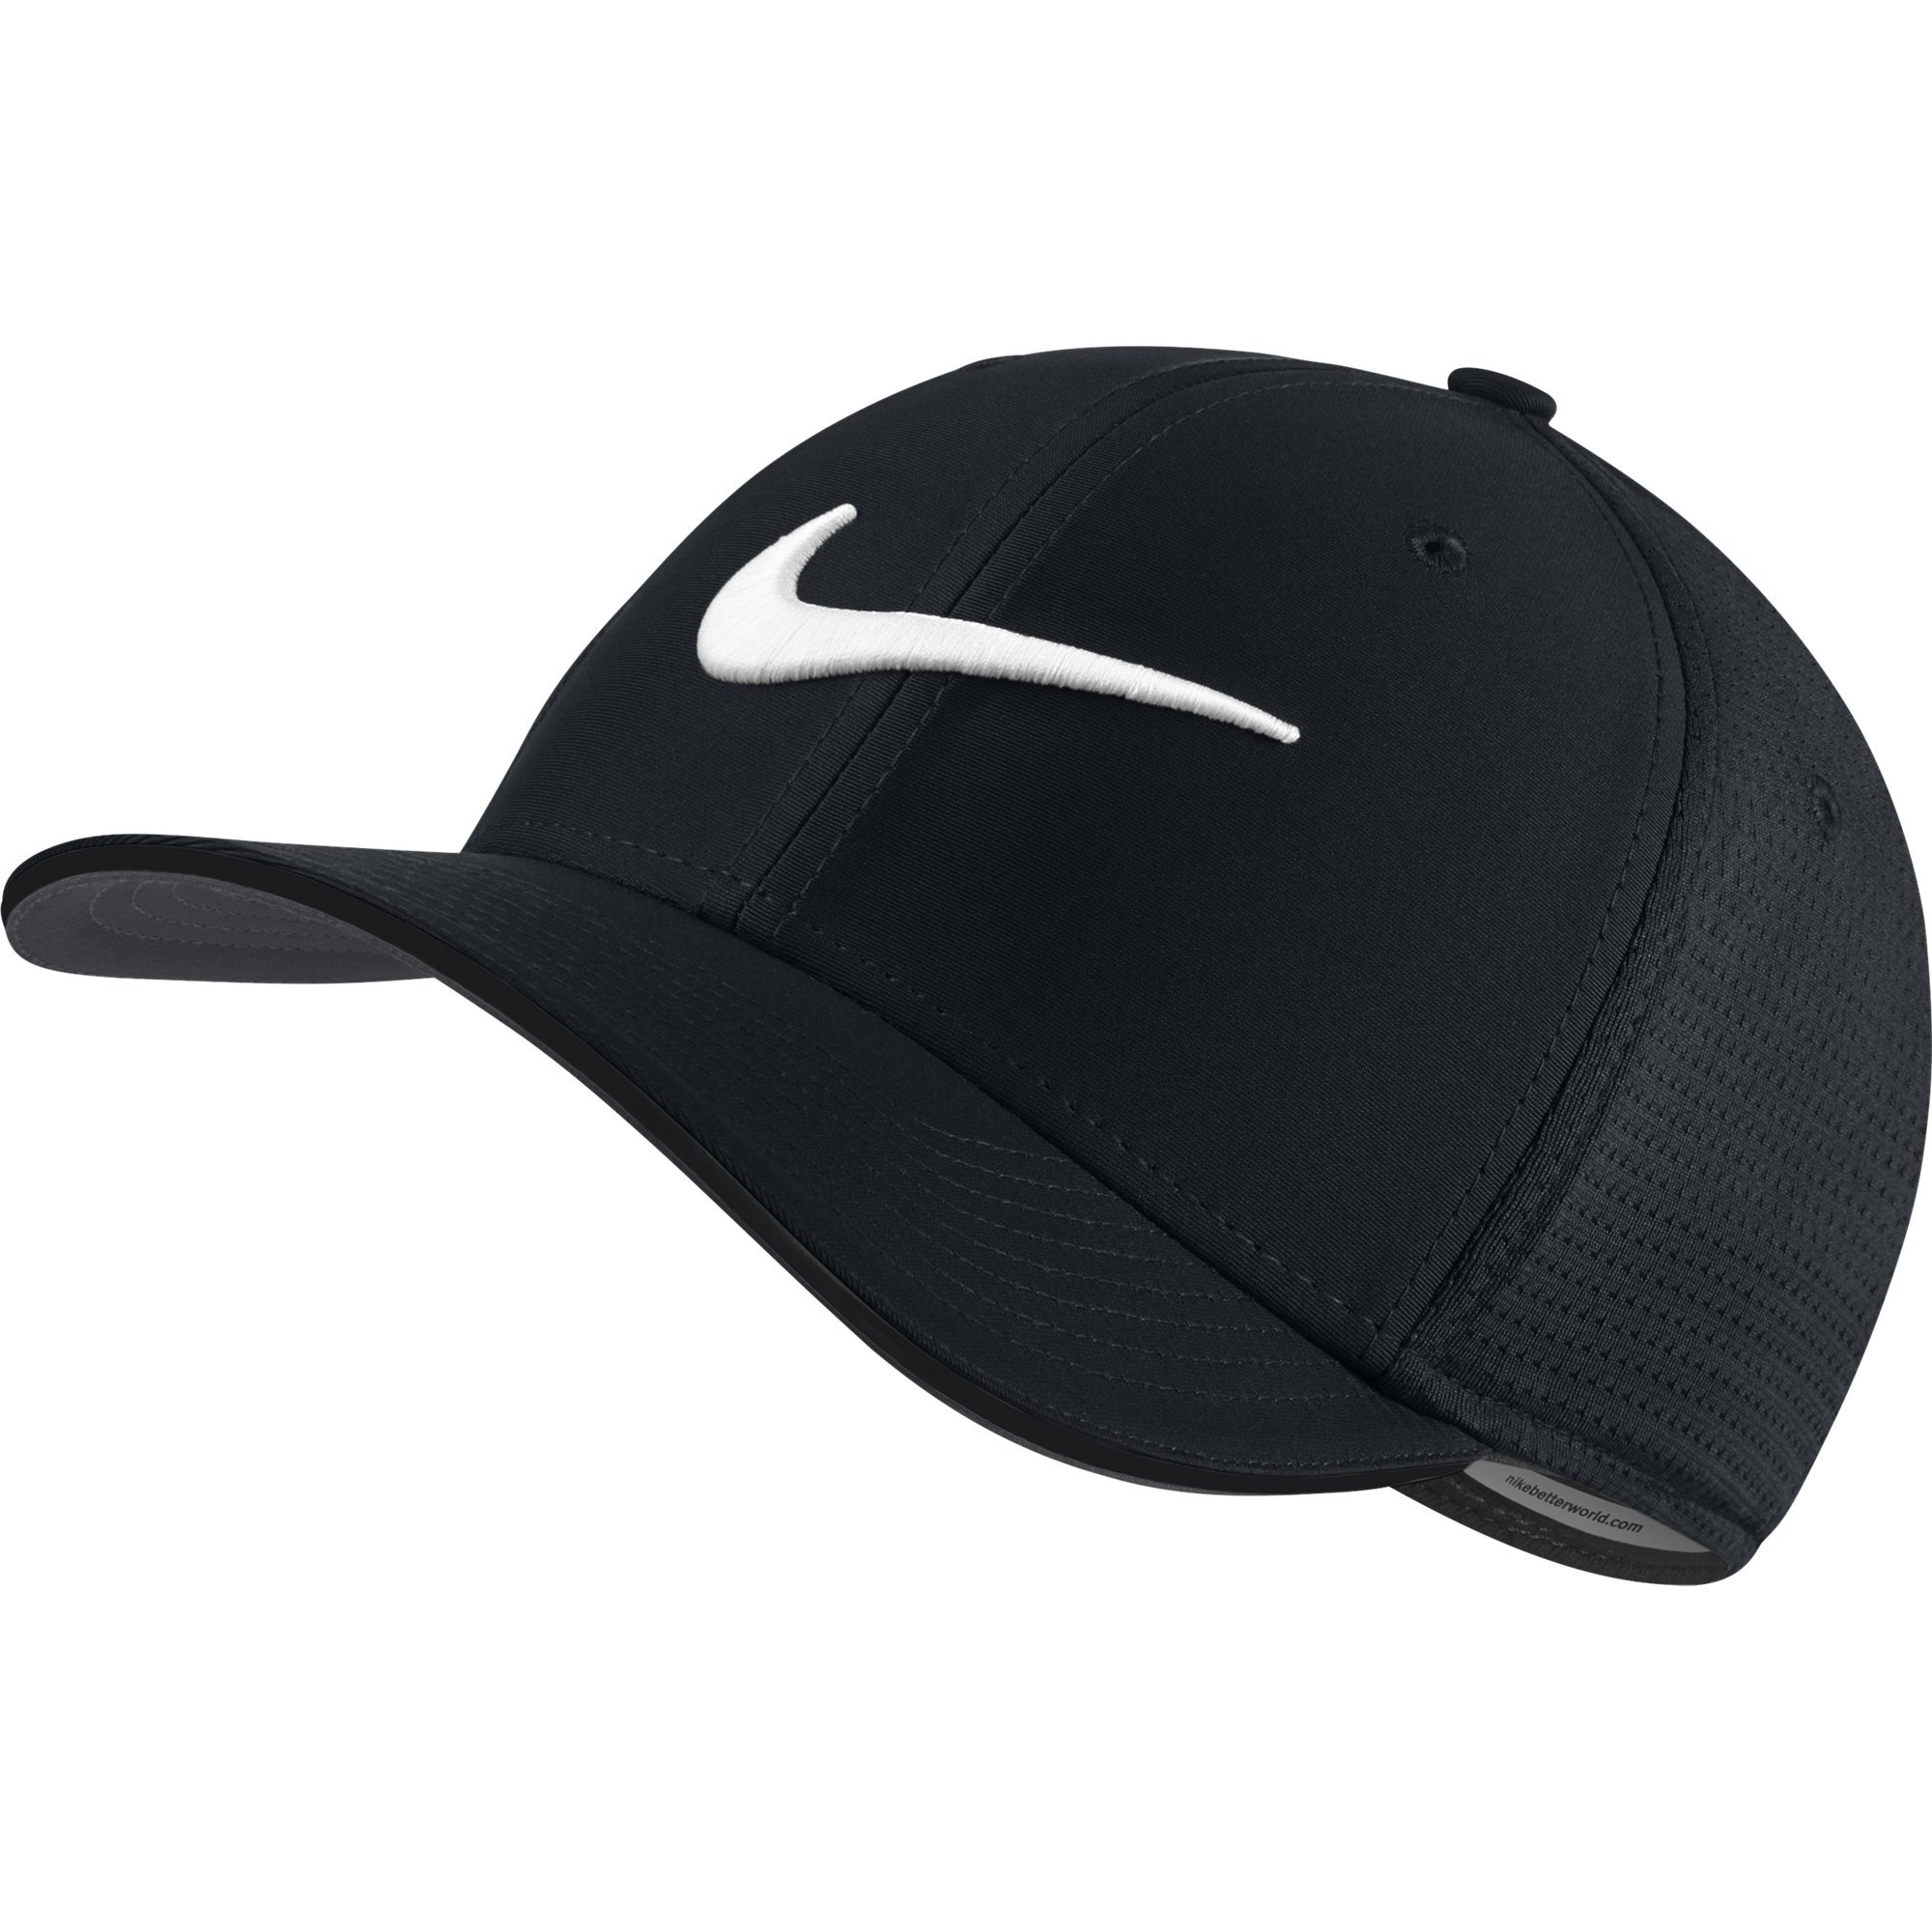 NIKE Unisex Classic 99 Mesh Golf Cap, Black/Black/Anthracite/White, Medium/Large